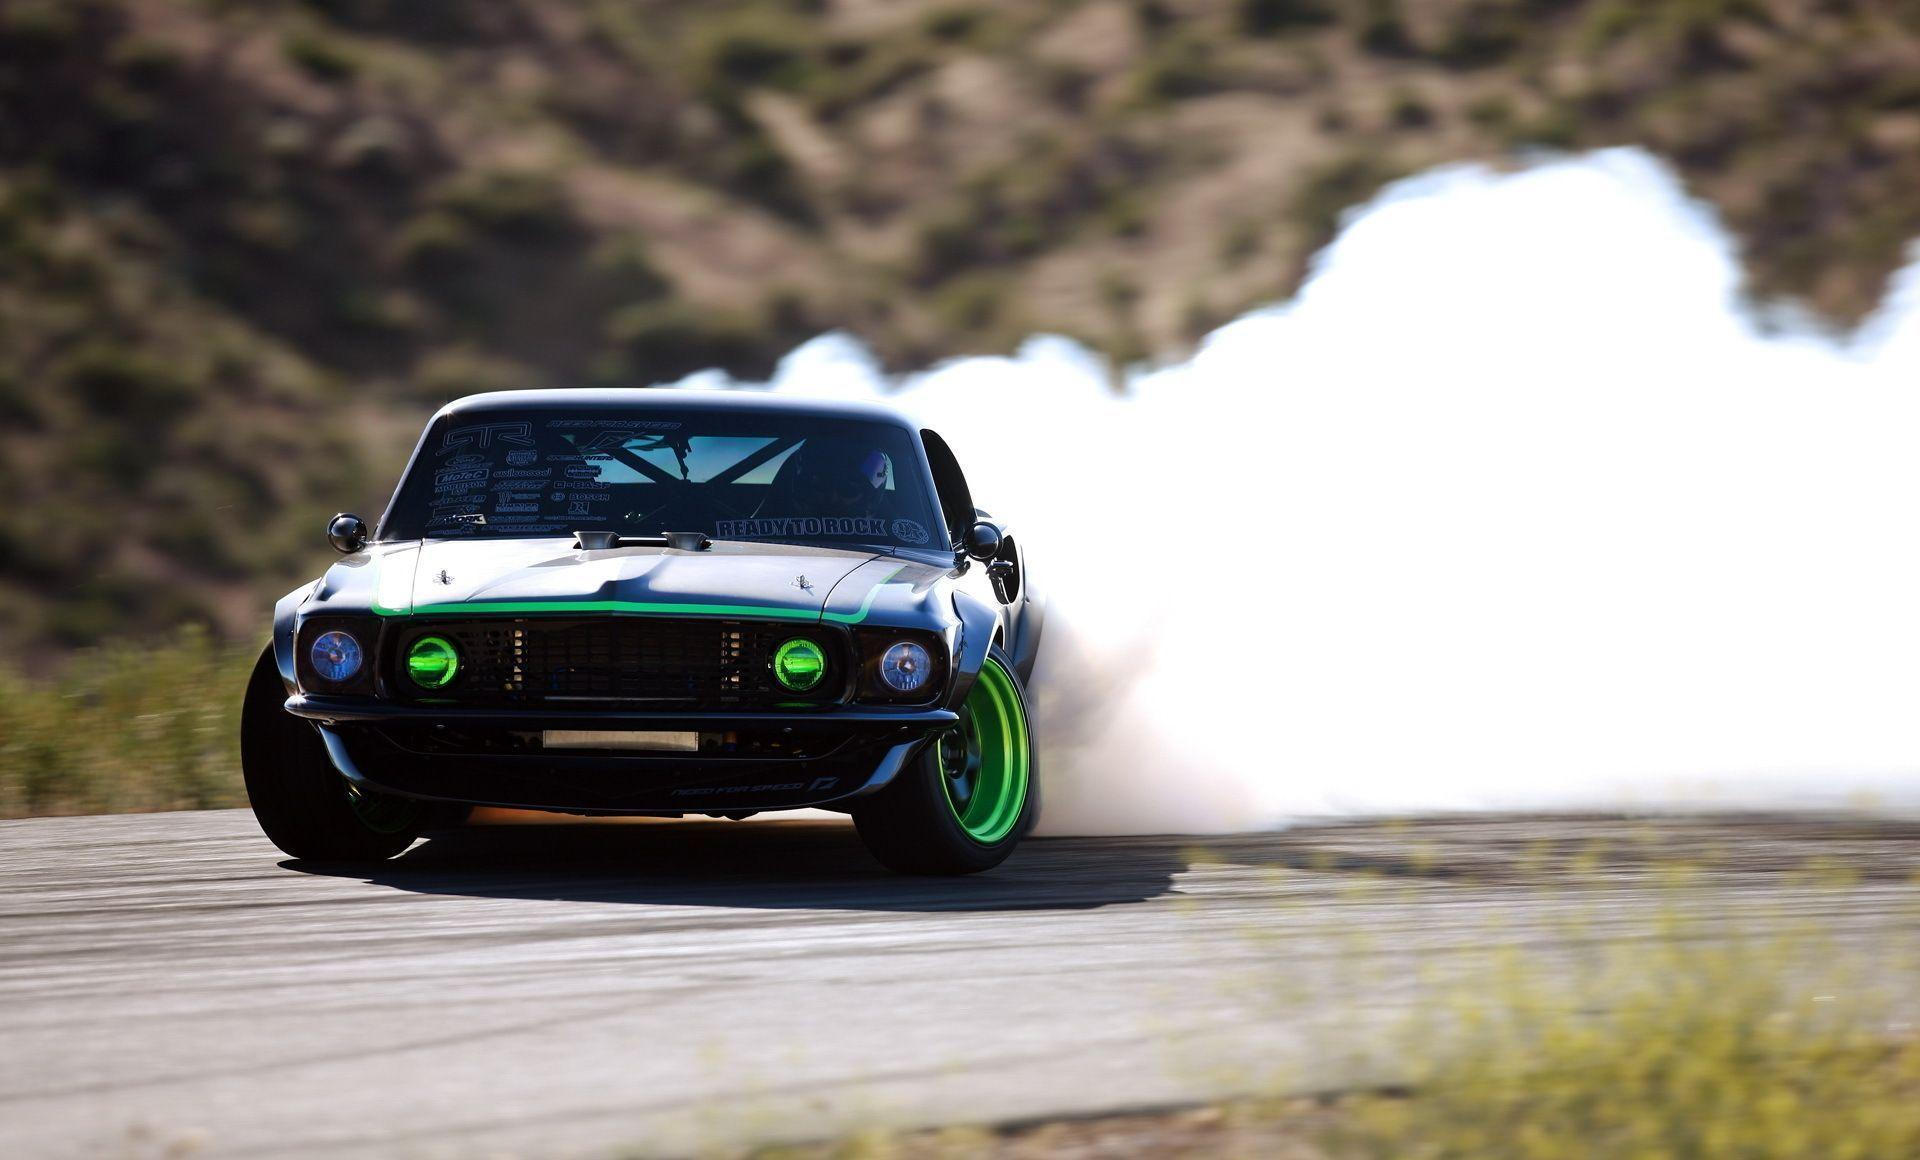 Cars-Drifting-Wallpapers-8.jpg